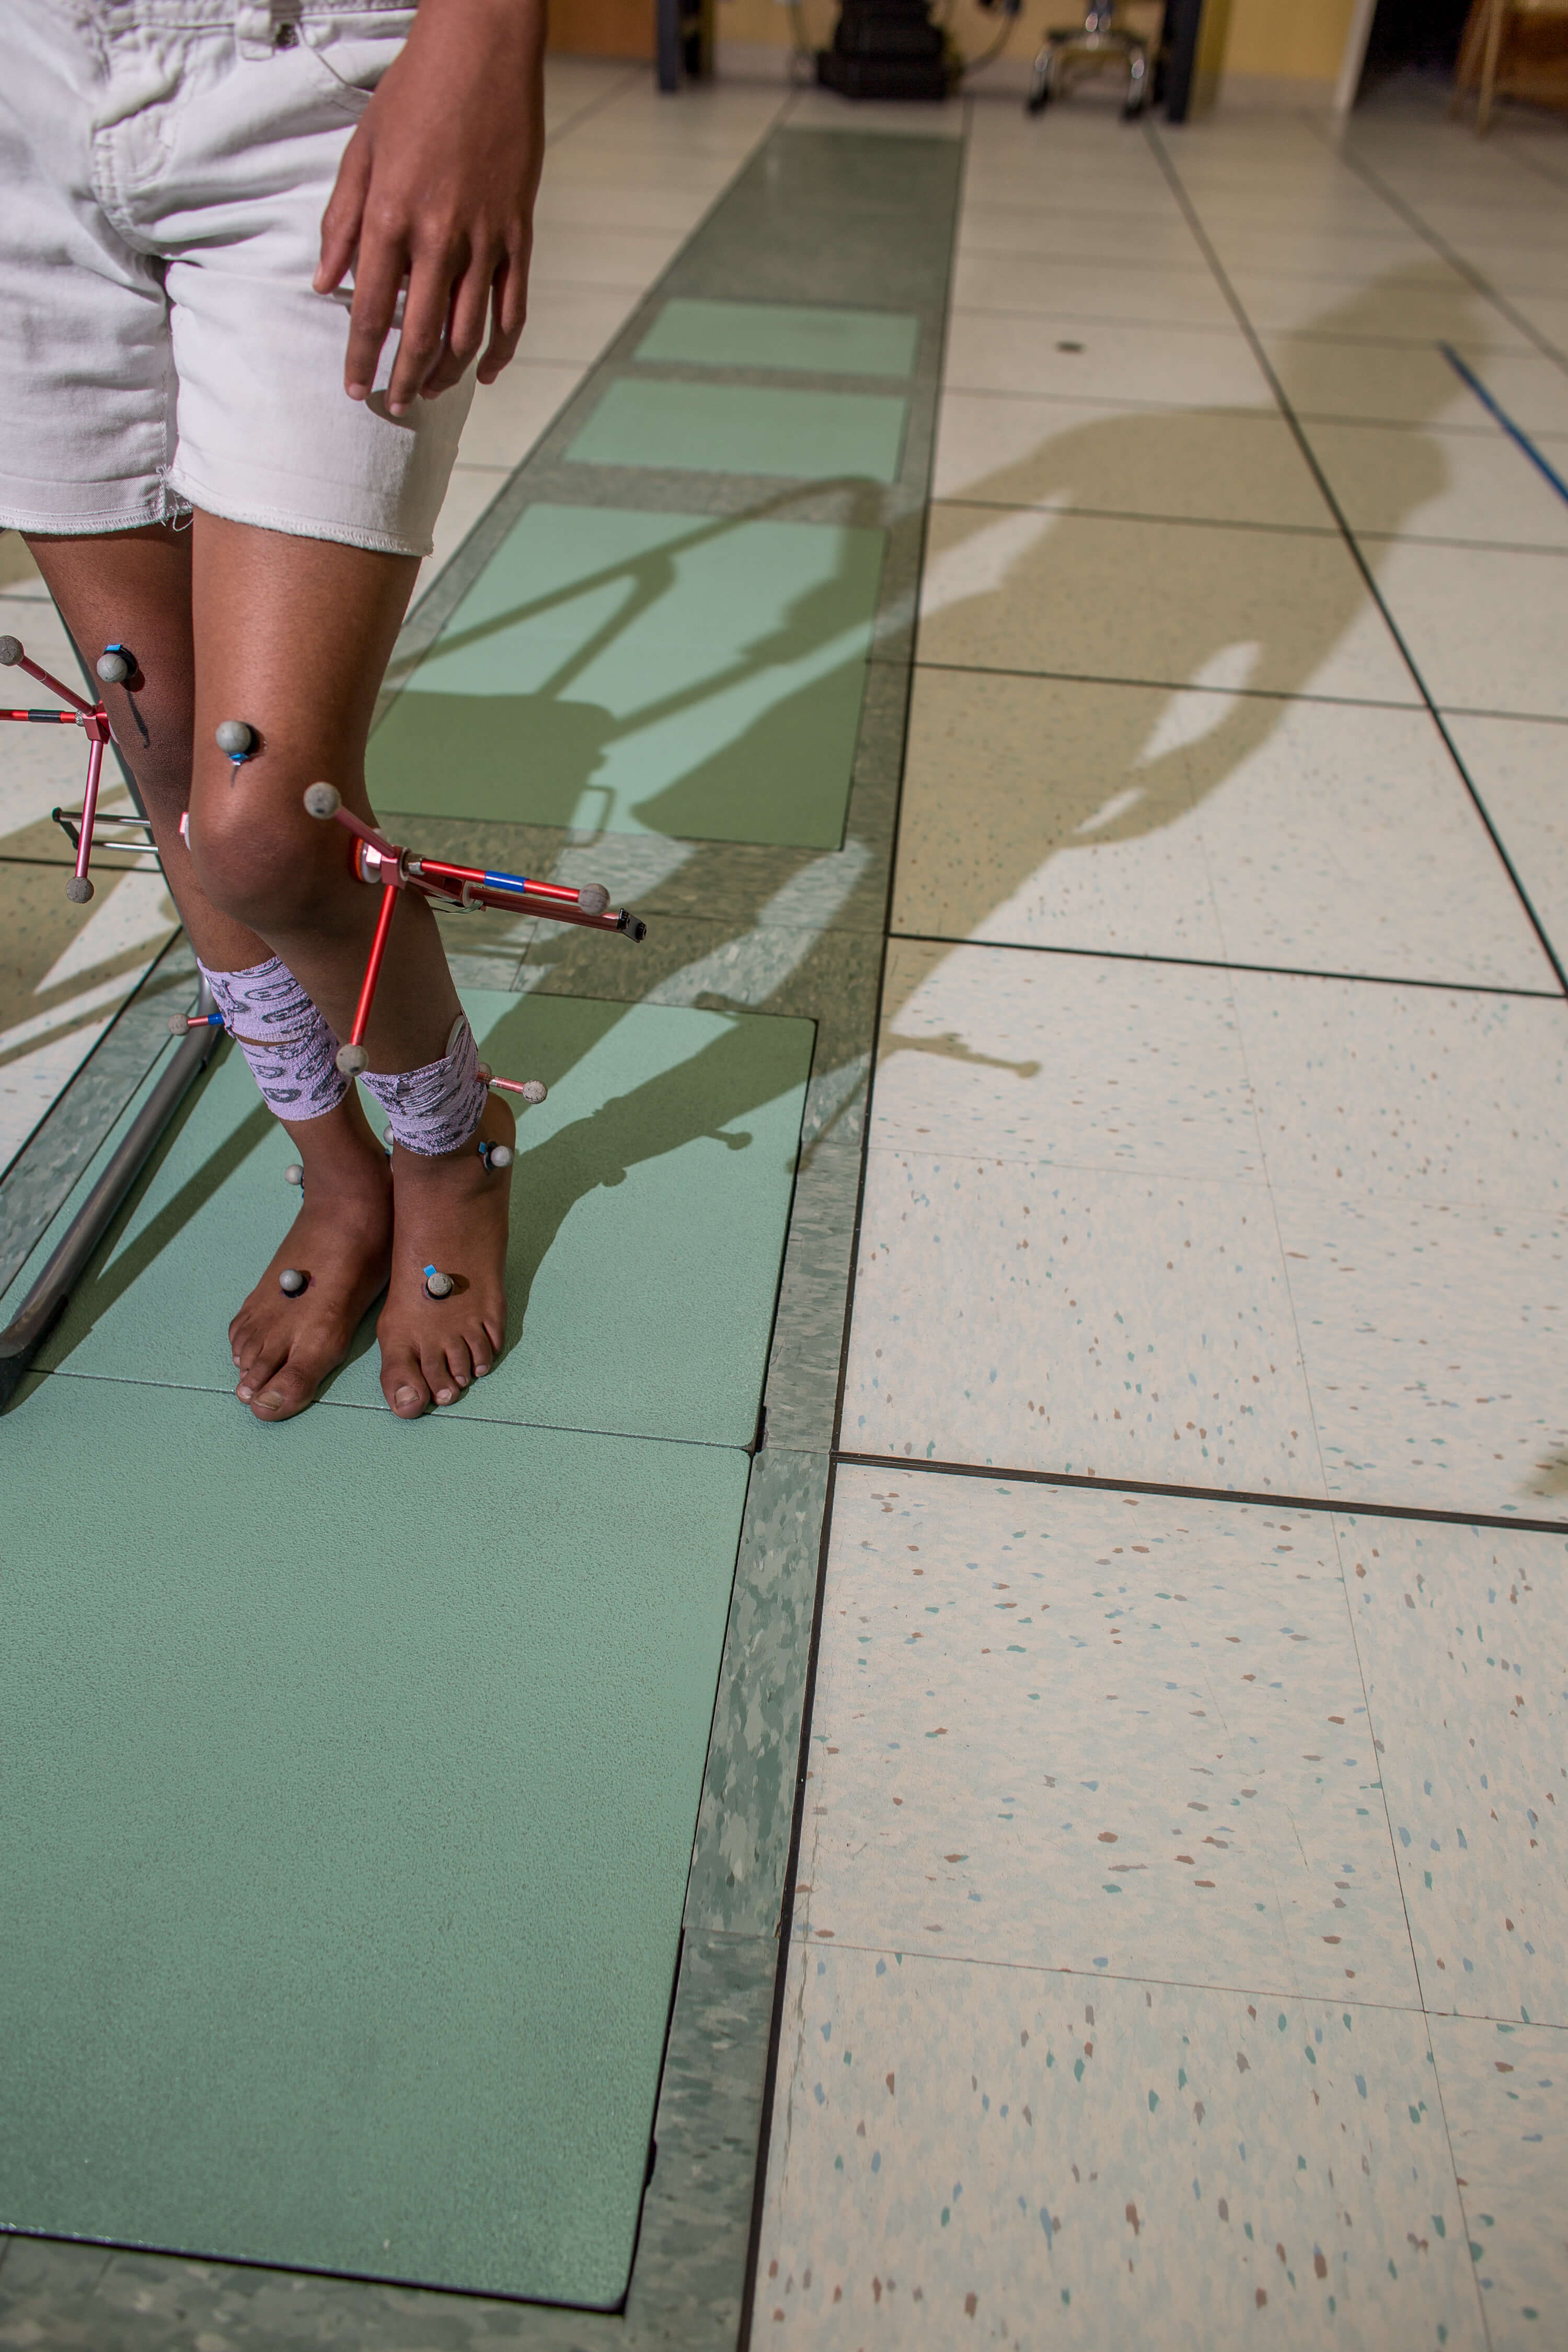 Location markers on the legs of Madilyn Jenkins, 9½, will turn her movements into animation during a motion analysis at Shriners Houston on May 6, 2019. (Photo by Nick de la Torre)